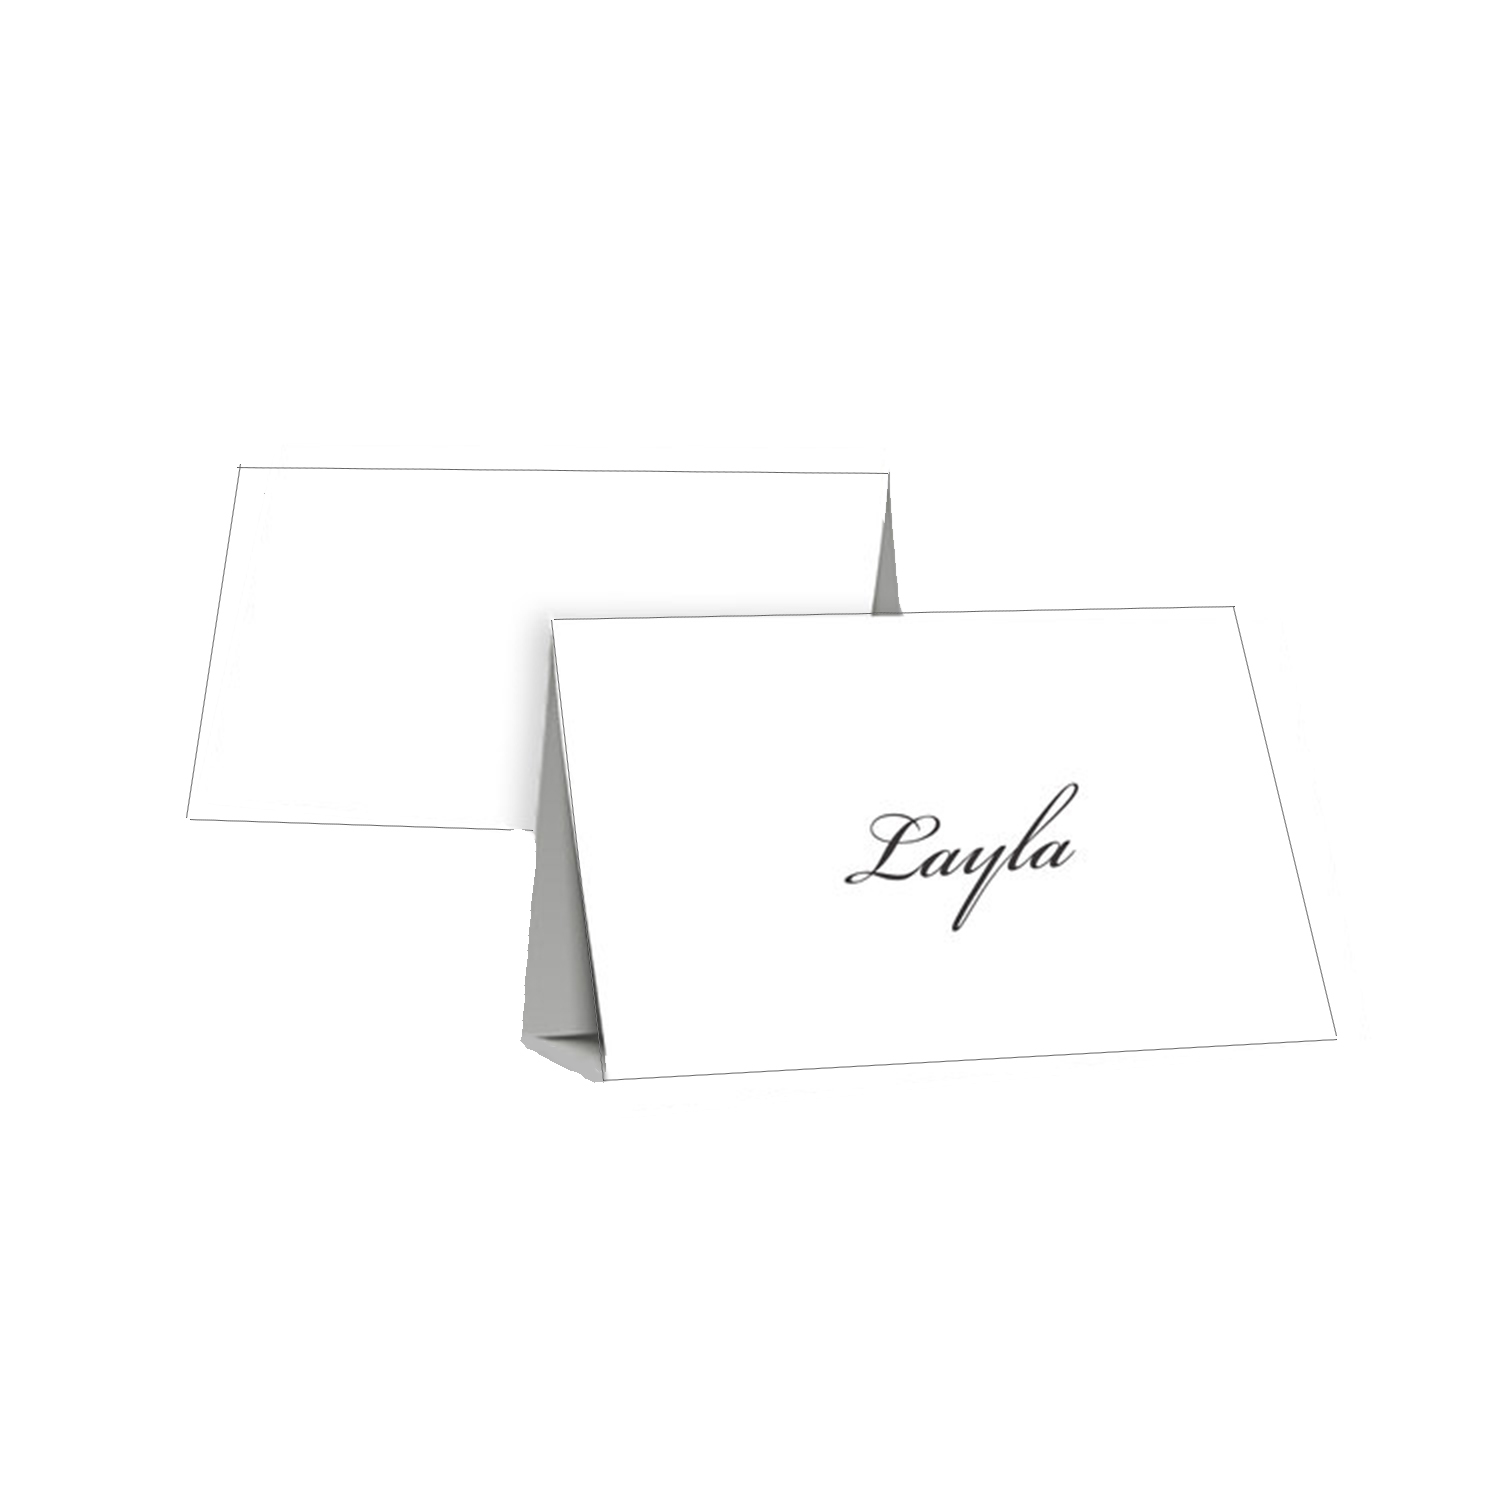 VENOM place cards white background.jpg